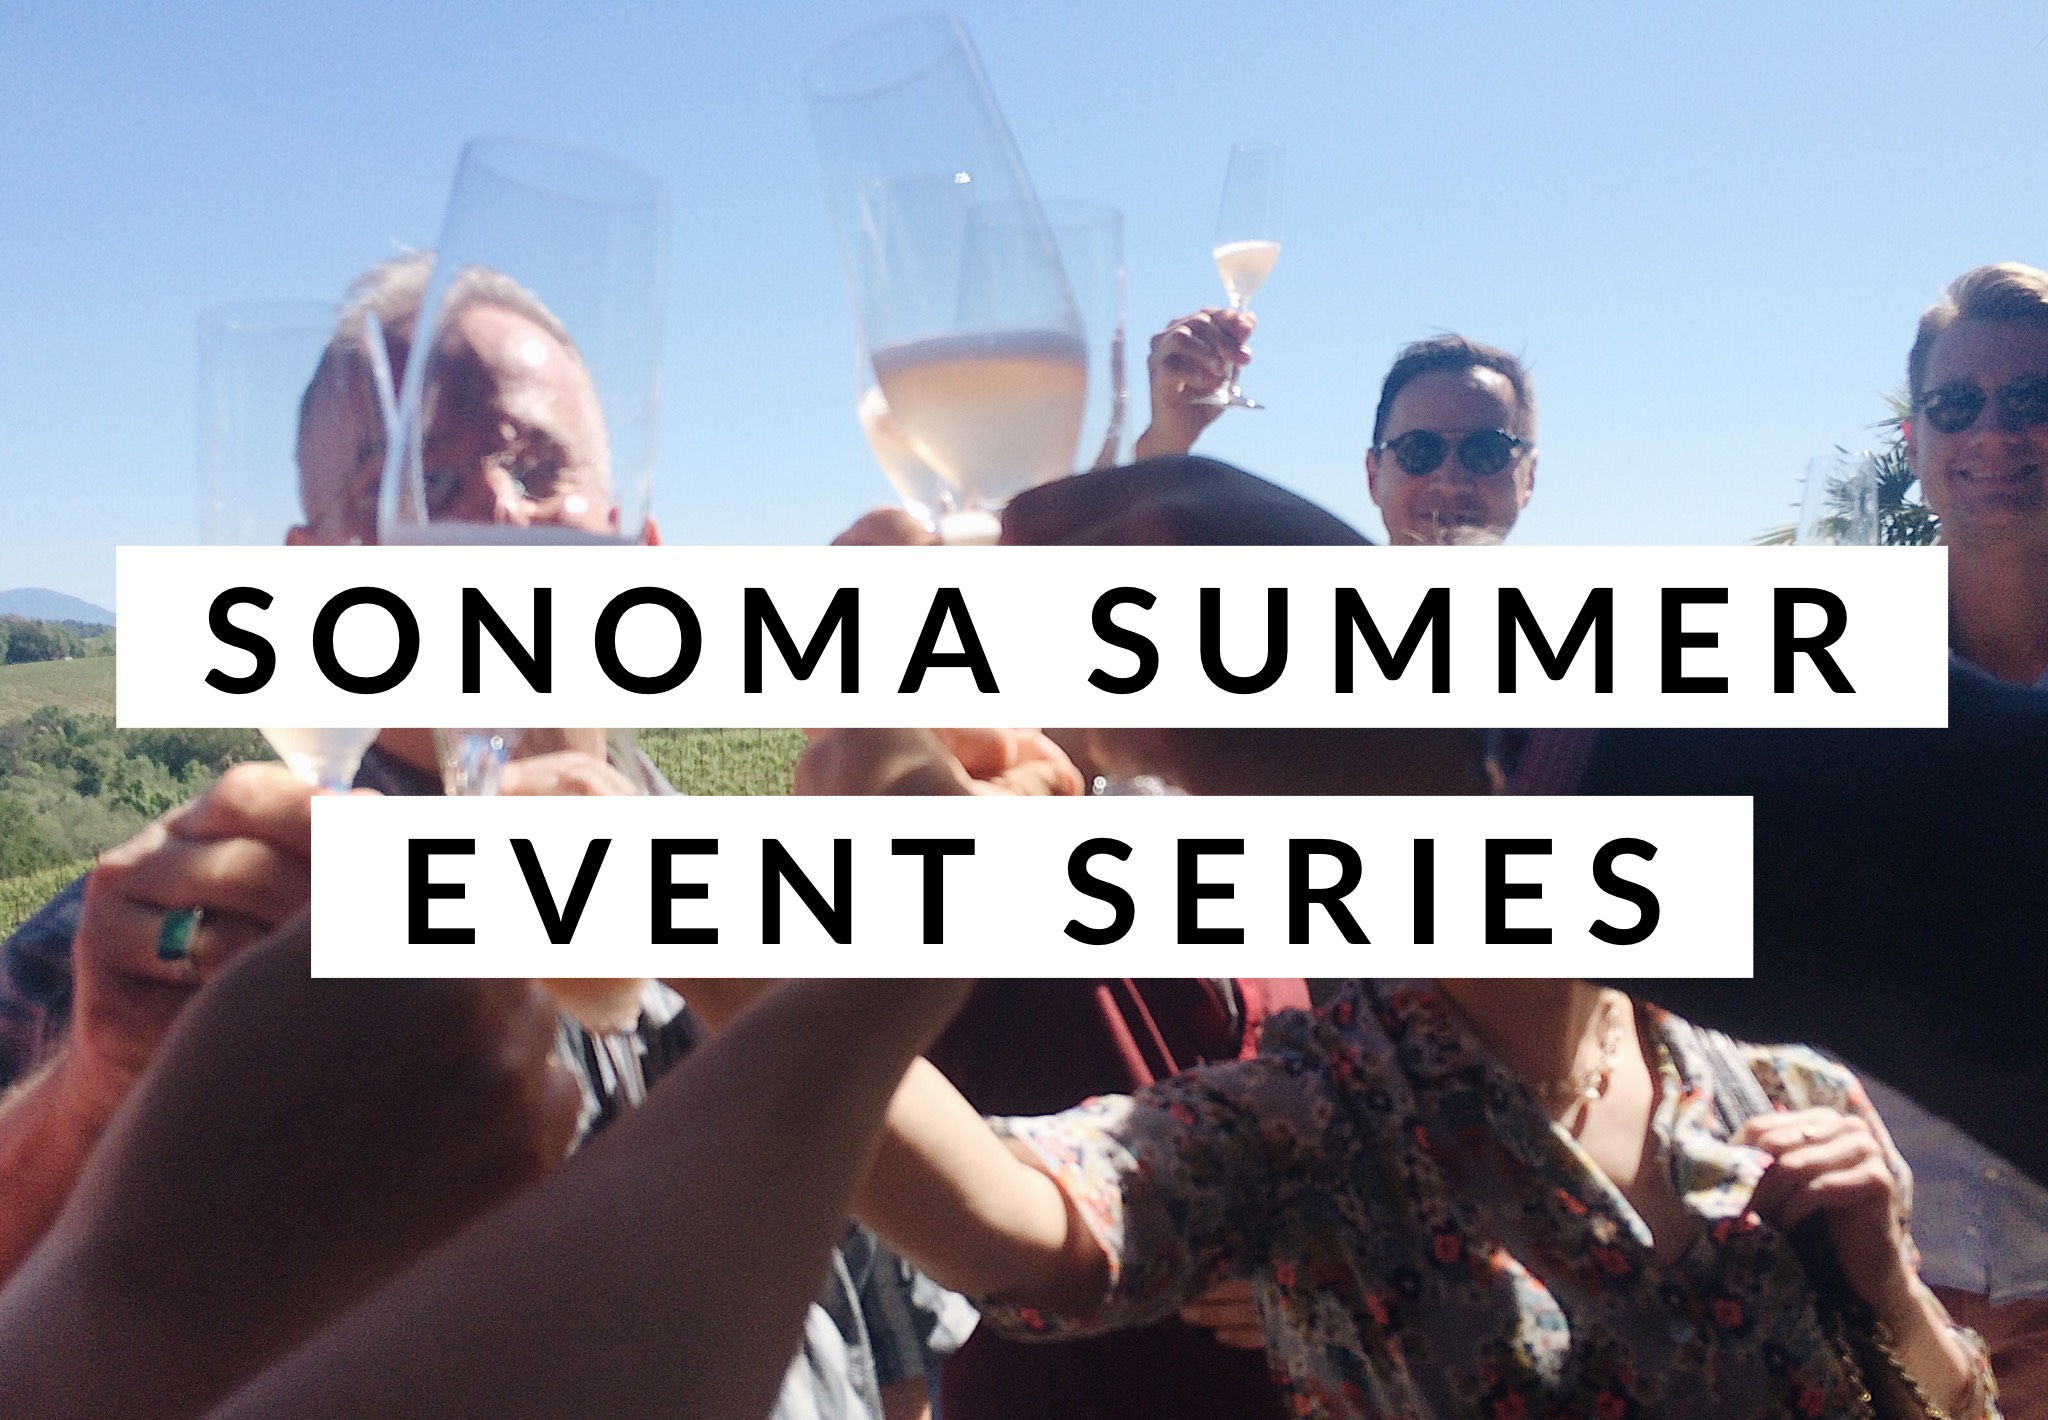 Sonoma Summer Event Series.jpg